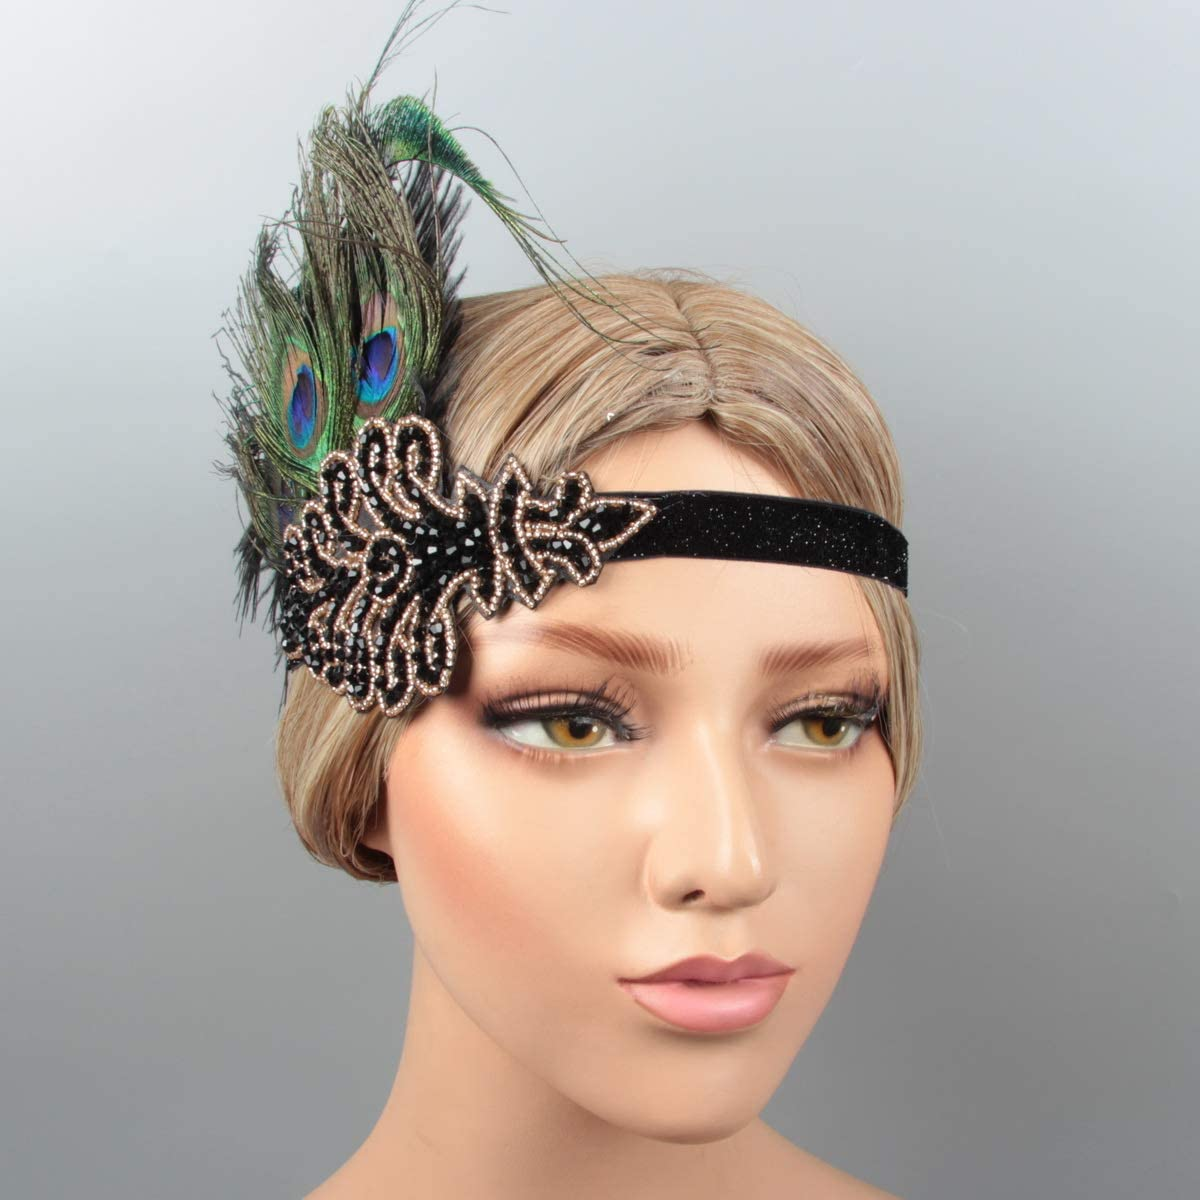 Vintage 1920s Gatsby Headpiece Flapper Headband with Beaded Applique for Women